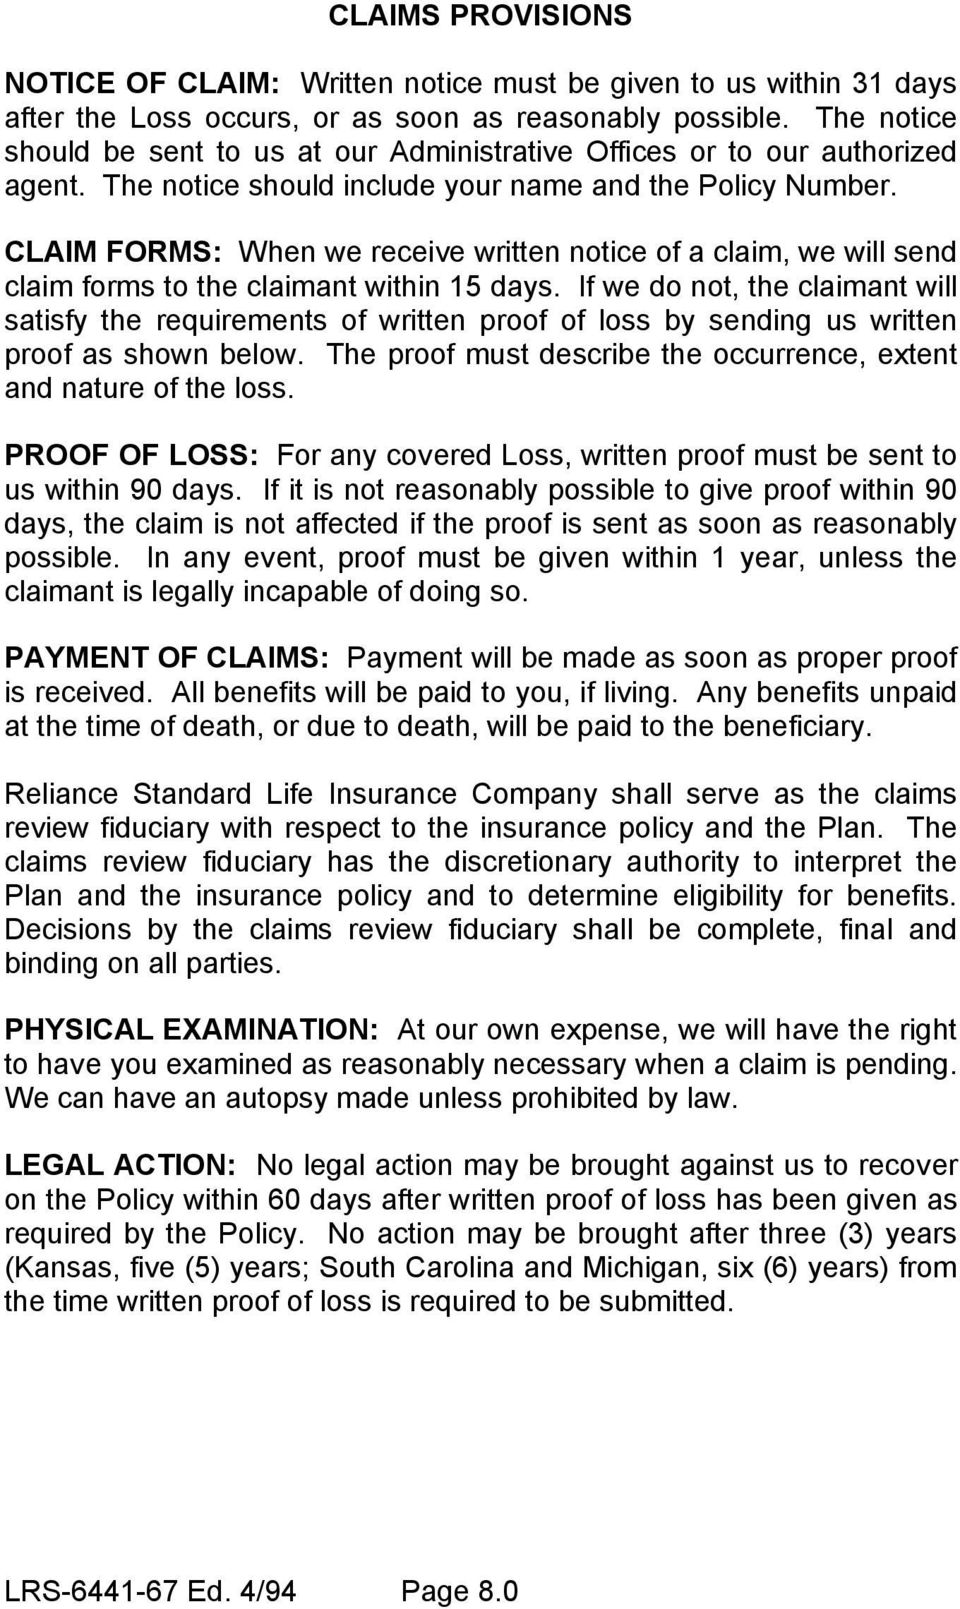 CLAIM FORMS: When we receive written notice of a claim, we will send claim forms to the claimant within 15 days.